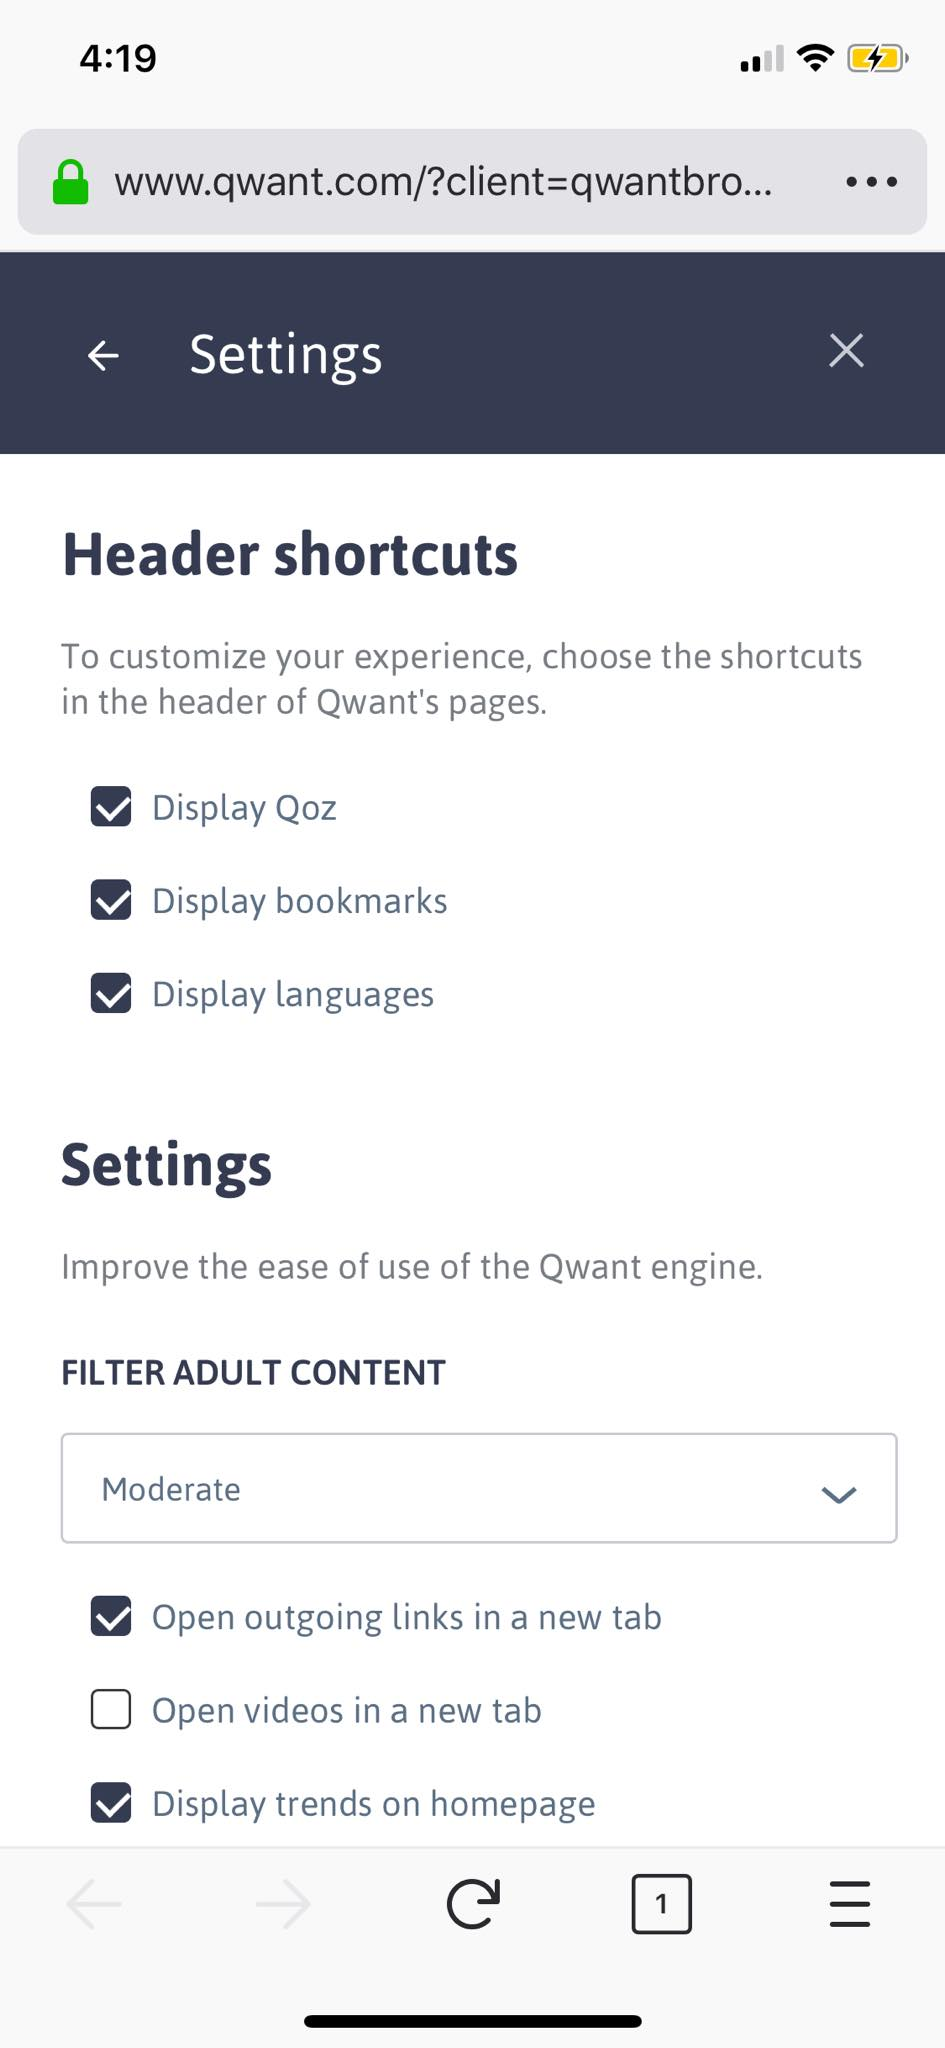 Settings on iOS by Qwant